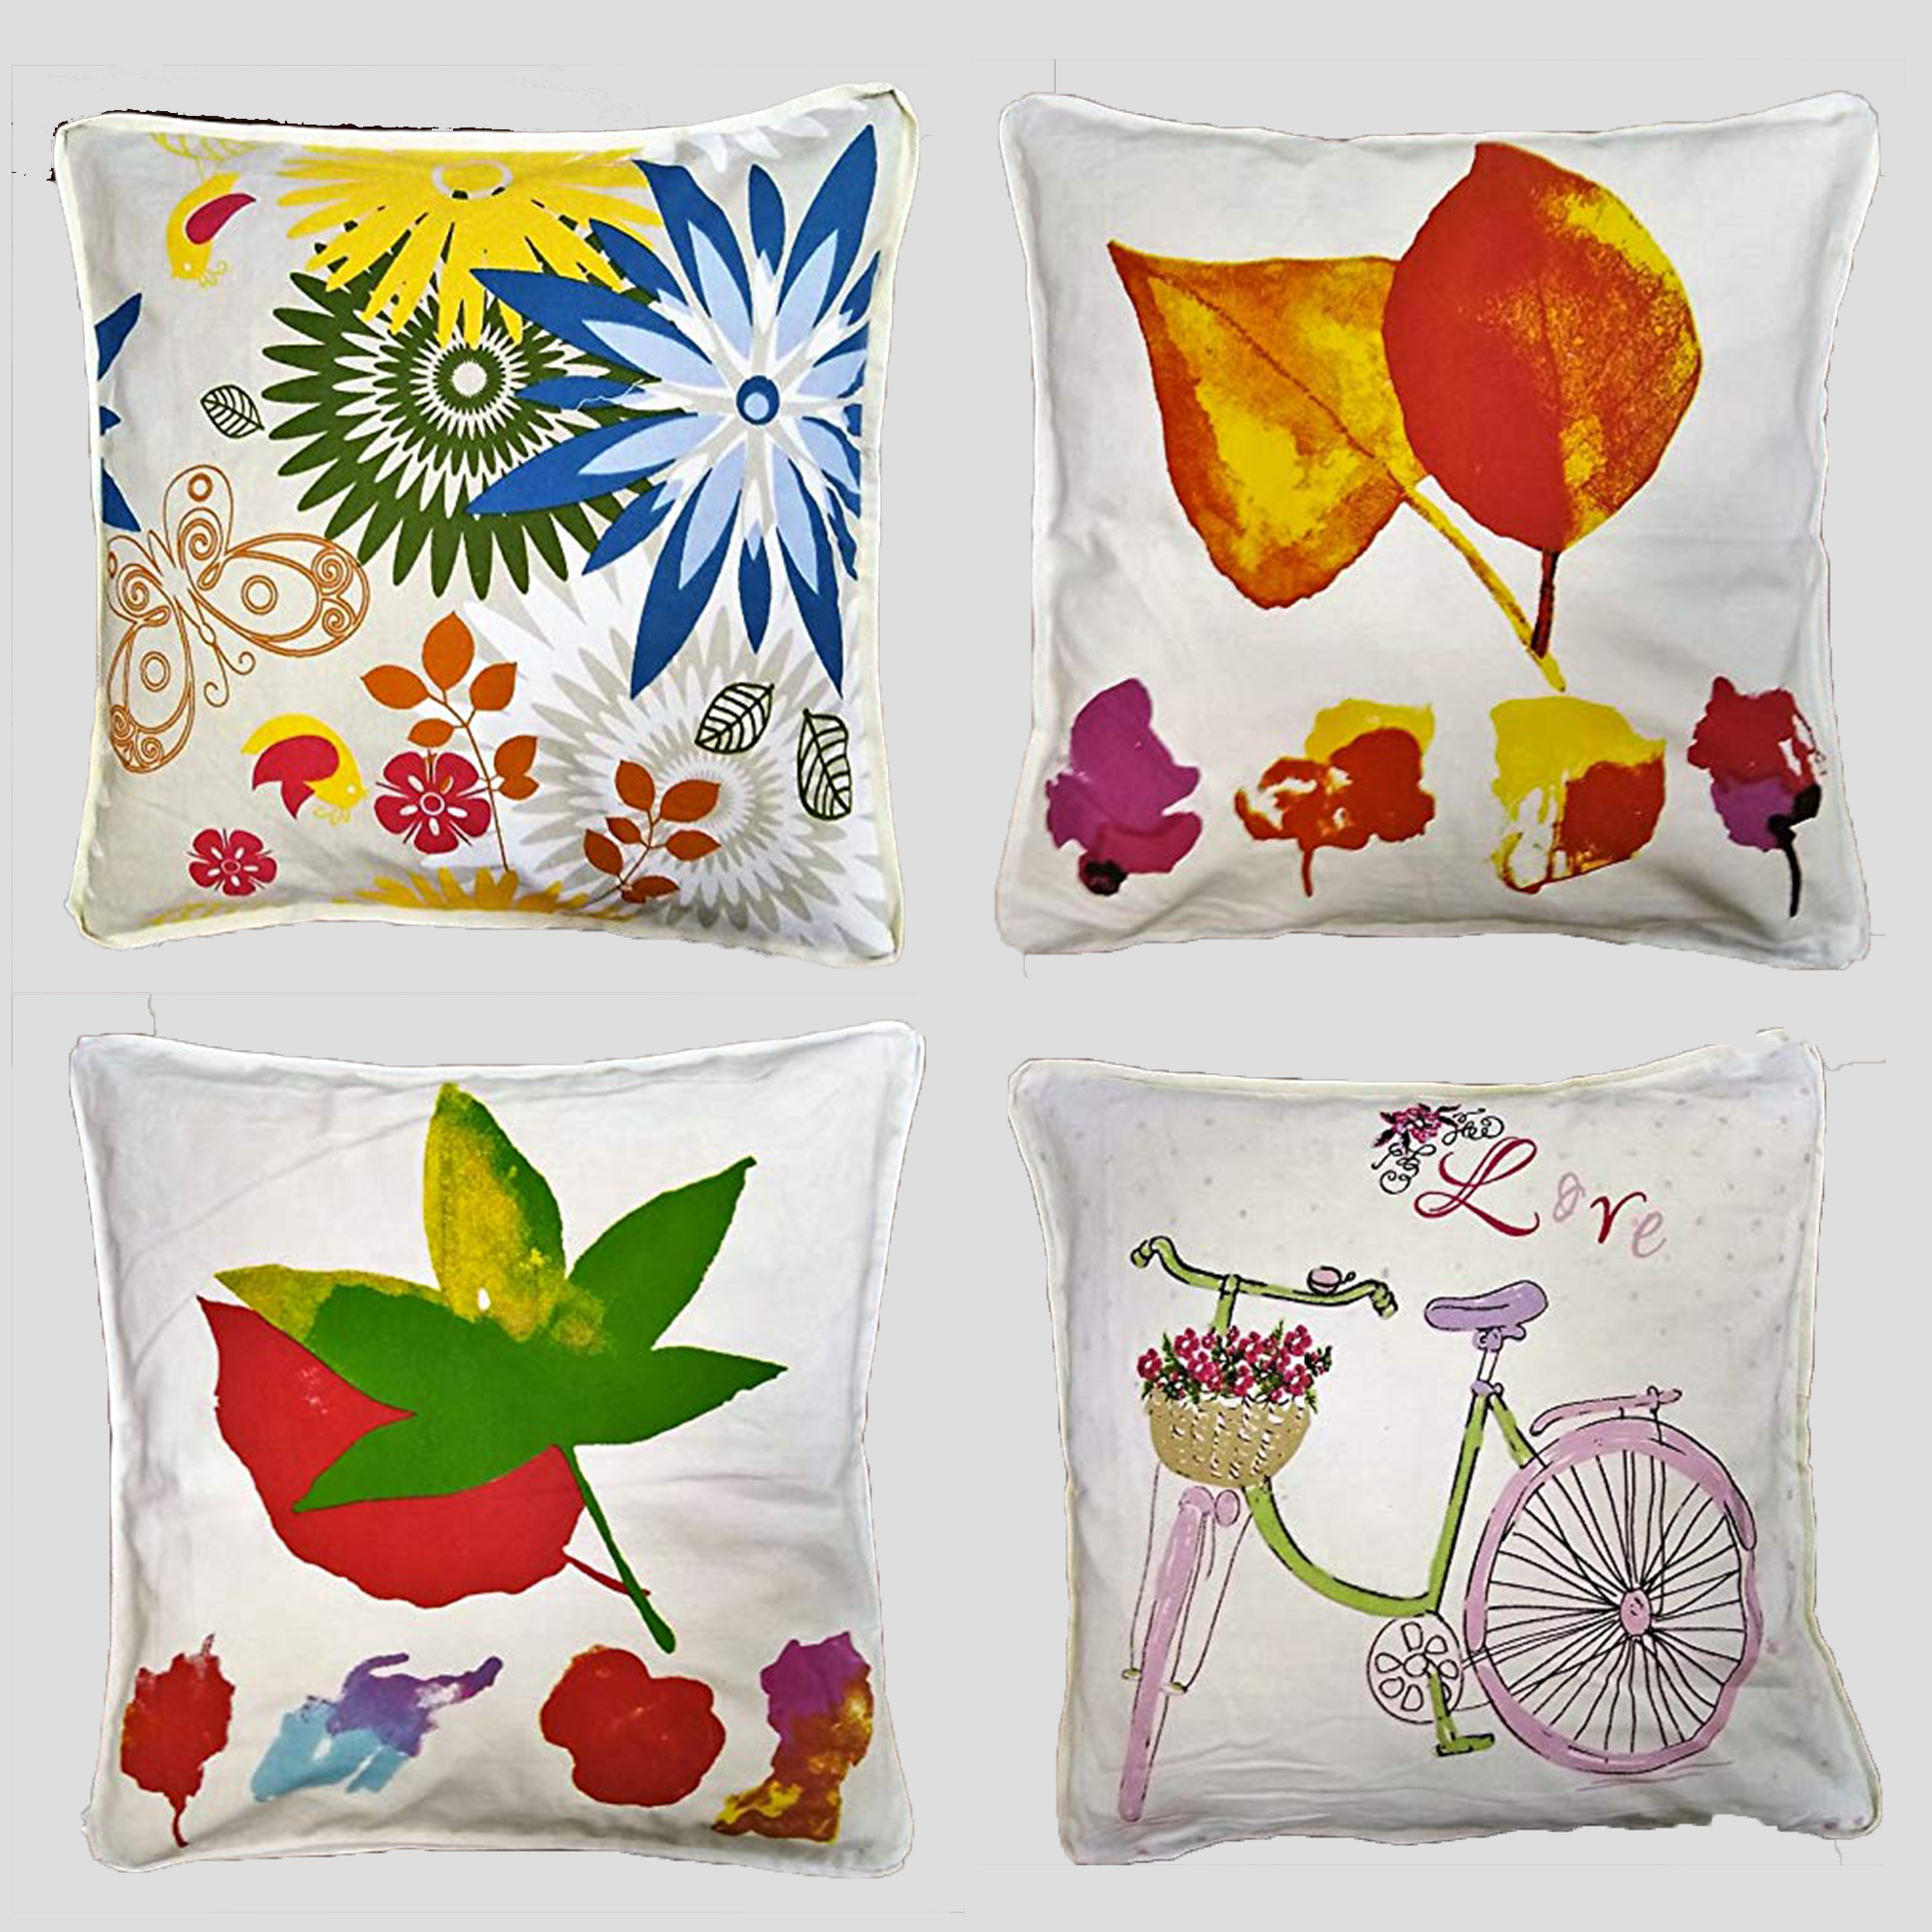 About Home Filled Printed Cotton Cushions Tape Edged, 22×22 inches,24×24 inches